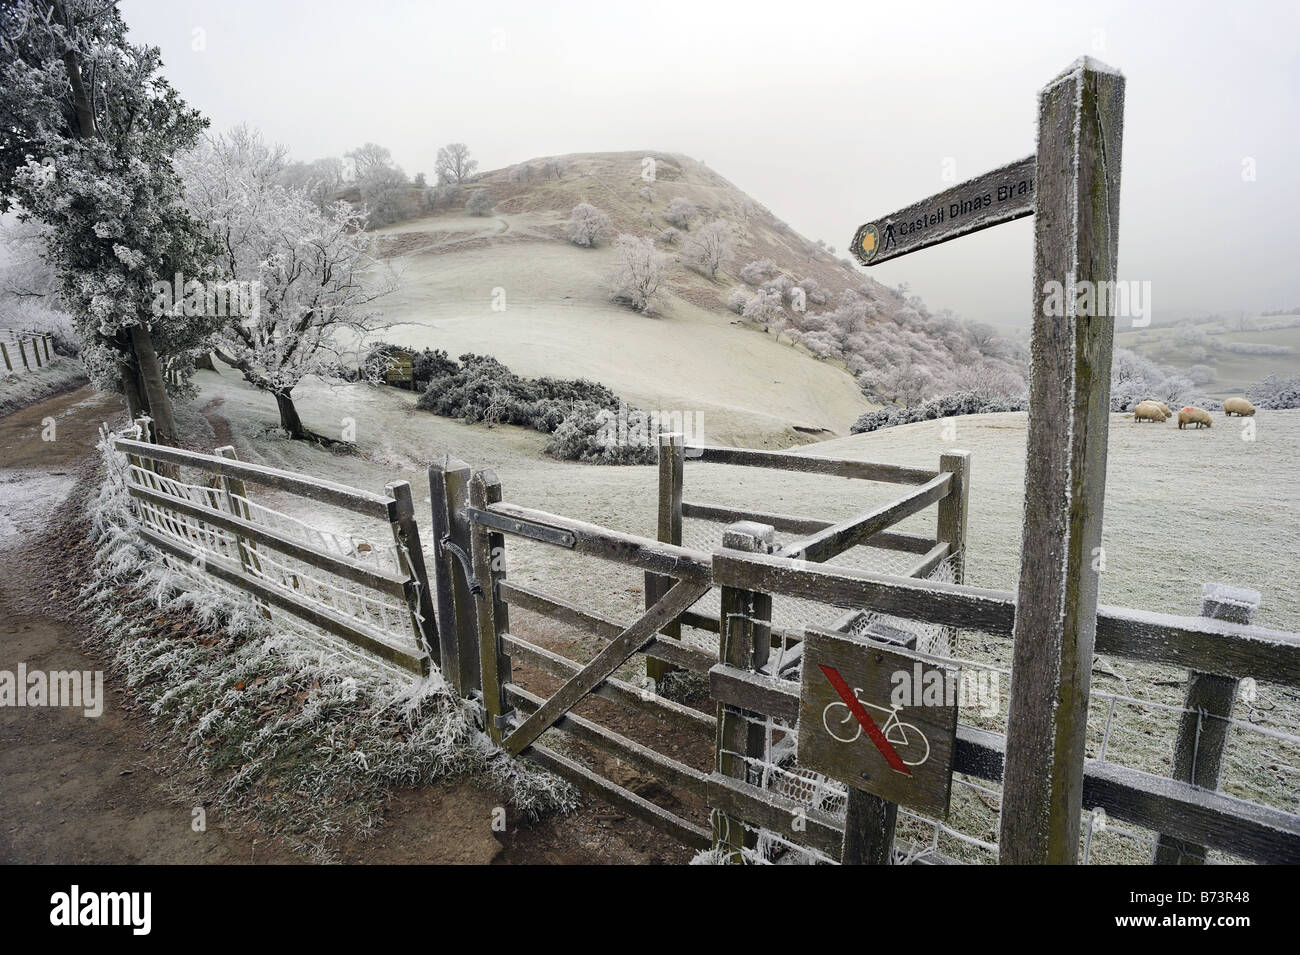 View of Castell Dinas Bran, on the hill above Llangollen, Wales, on cold frosty winter day Stock Photo